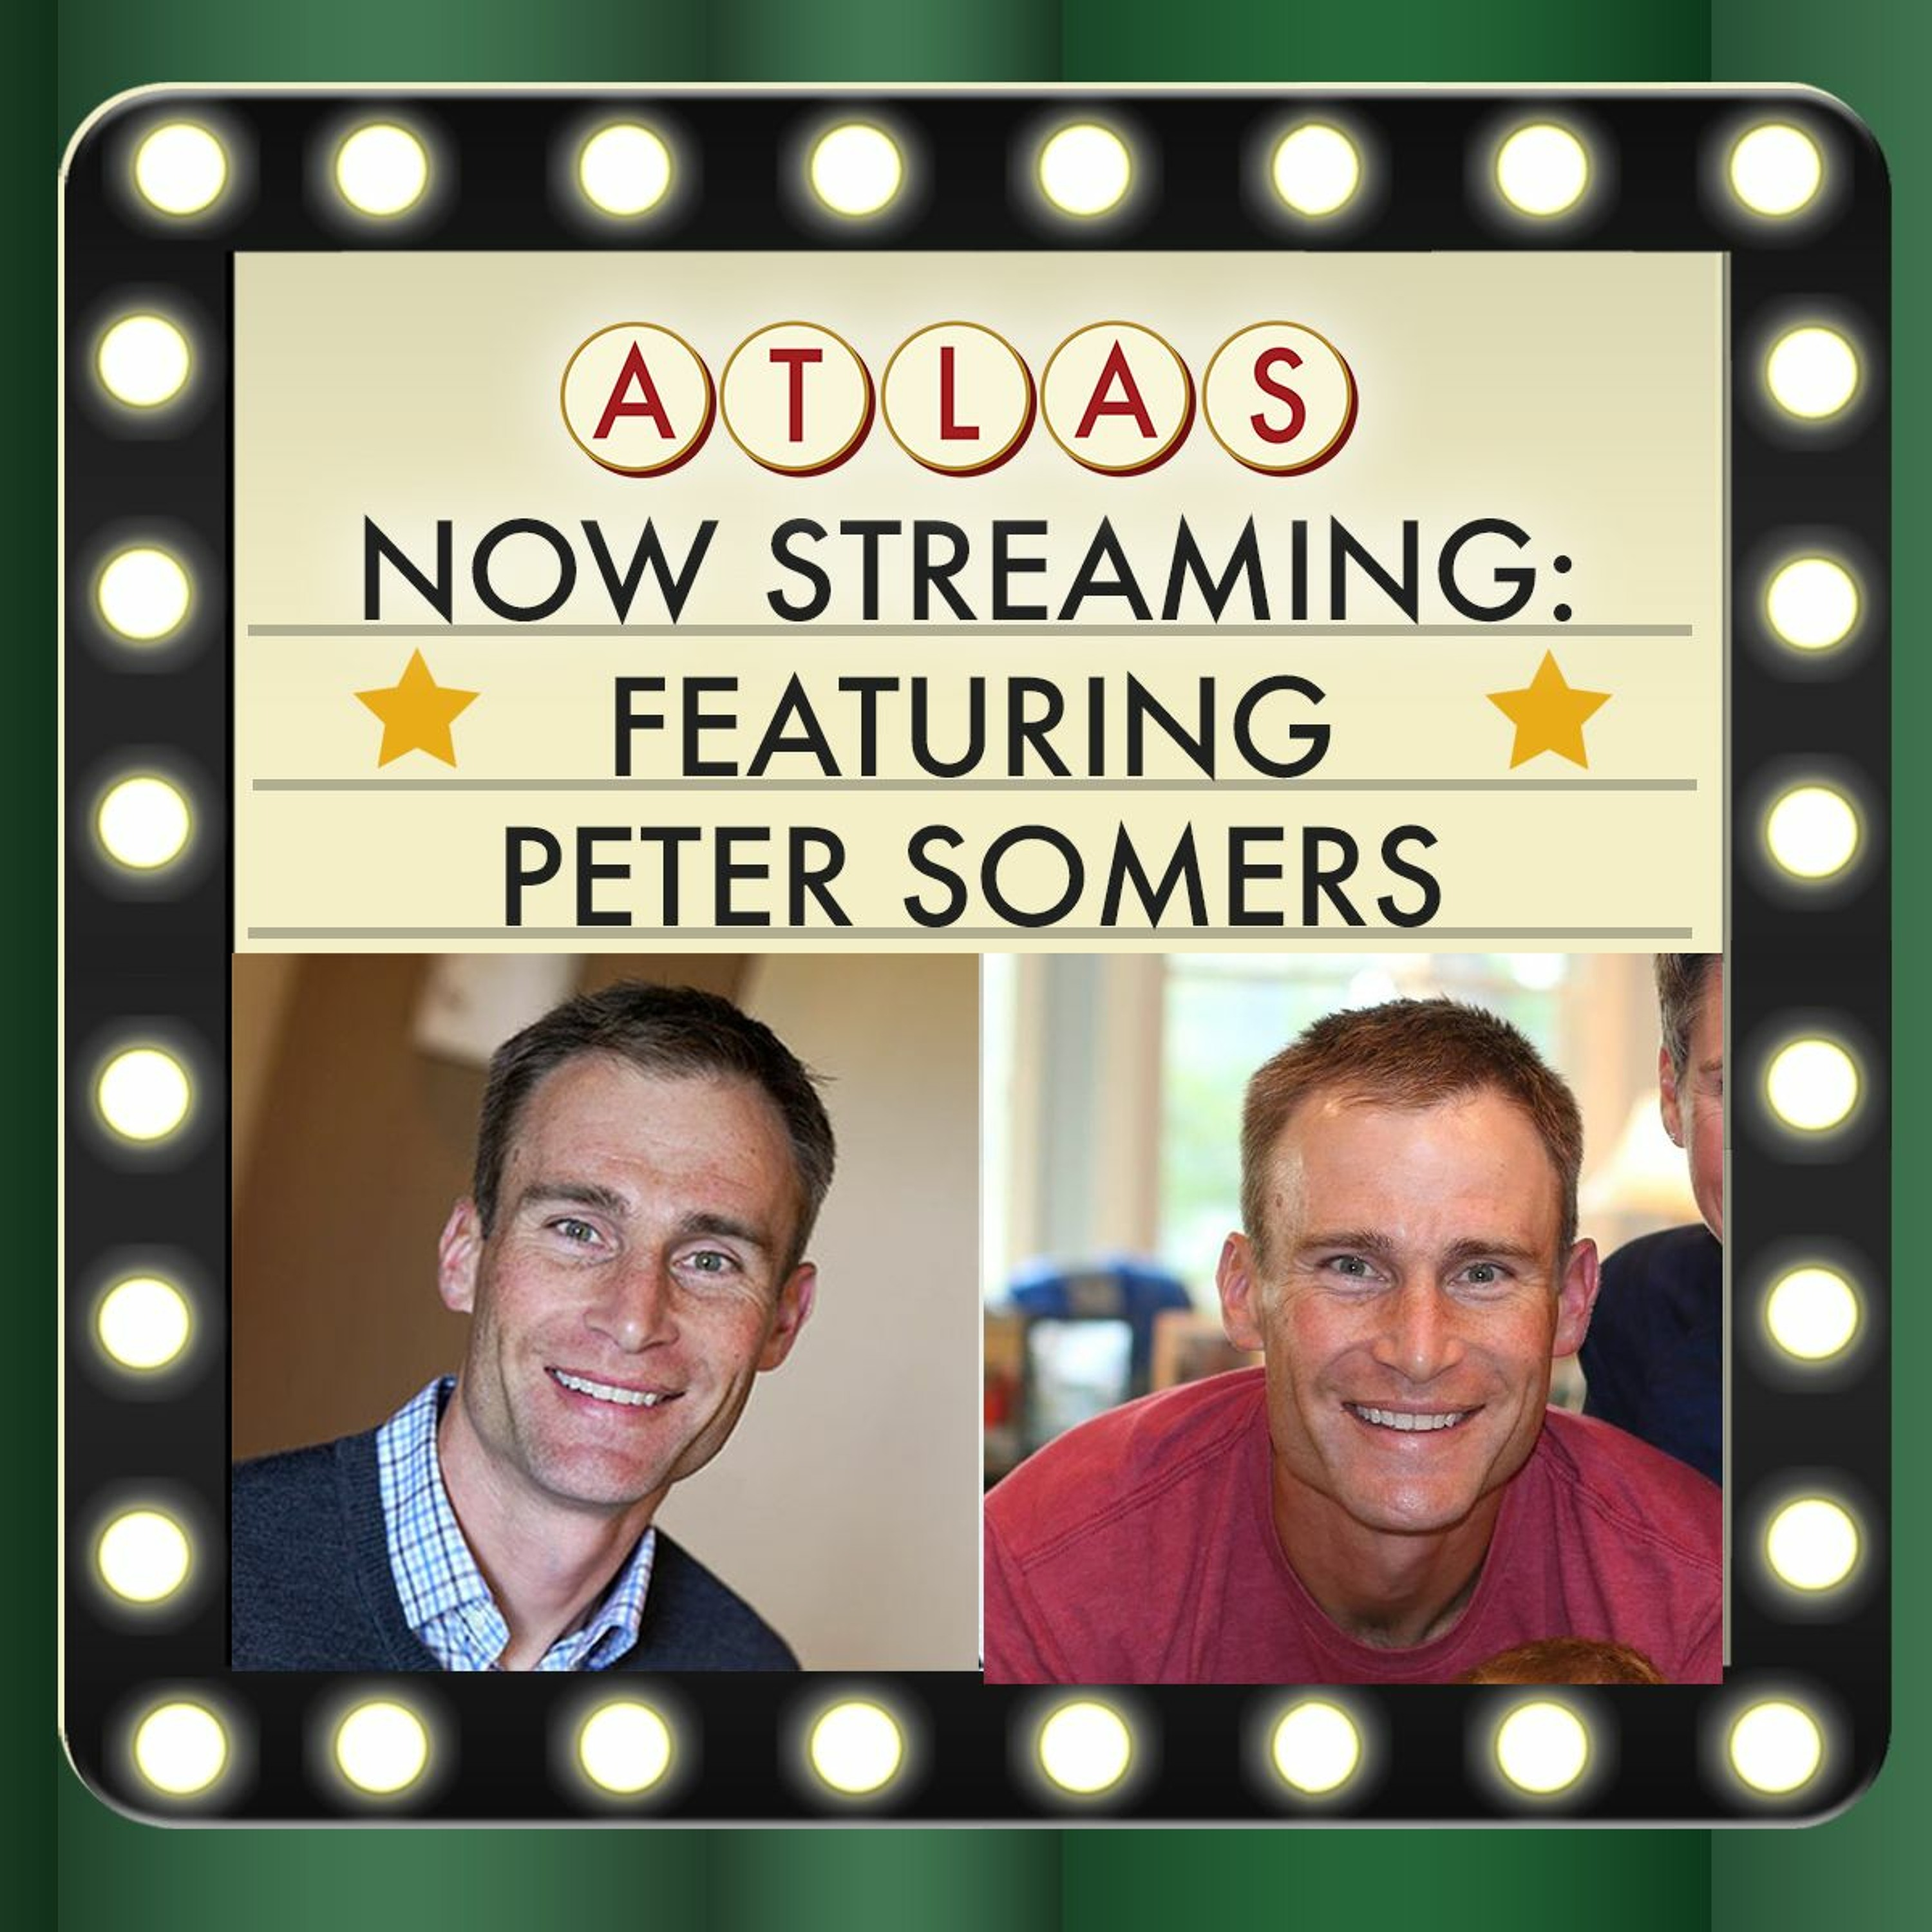 Recruiter Spotlight featuring Peter Somers - Atlas: Now Streaming 79